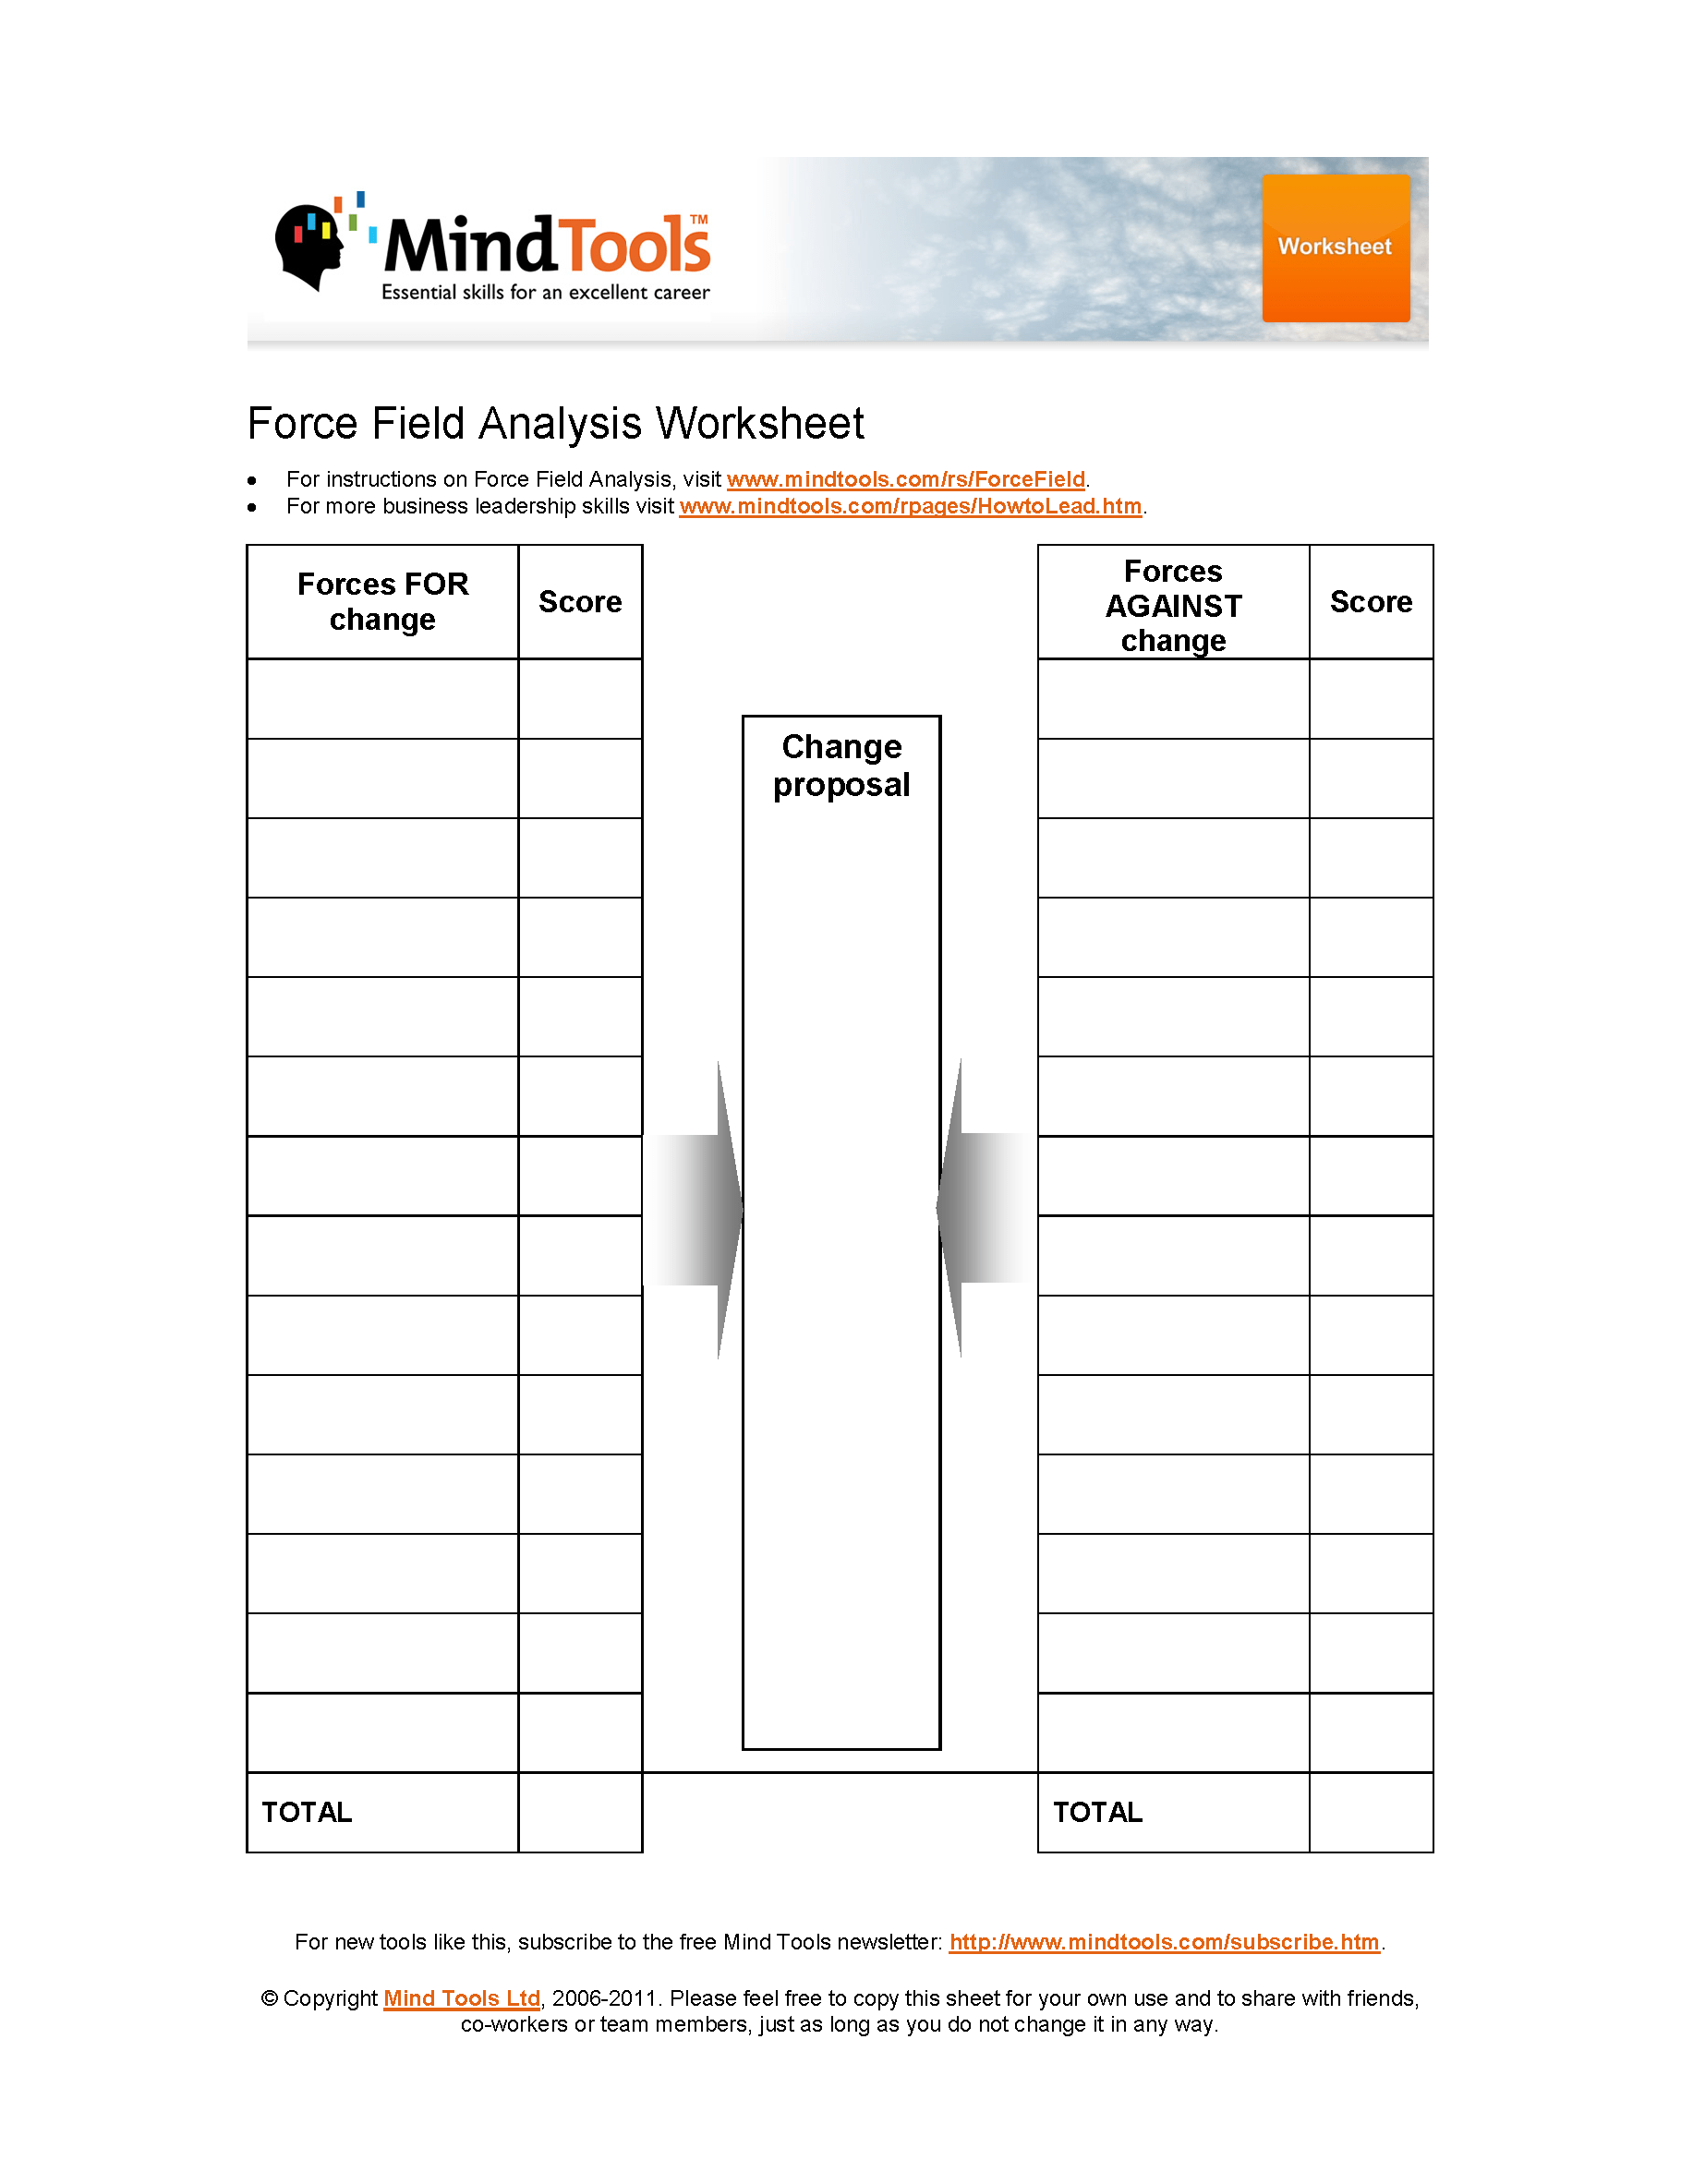 Mindtools Provides A Force Fieldysis Template To